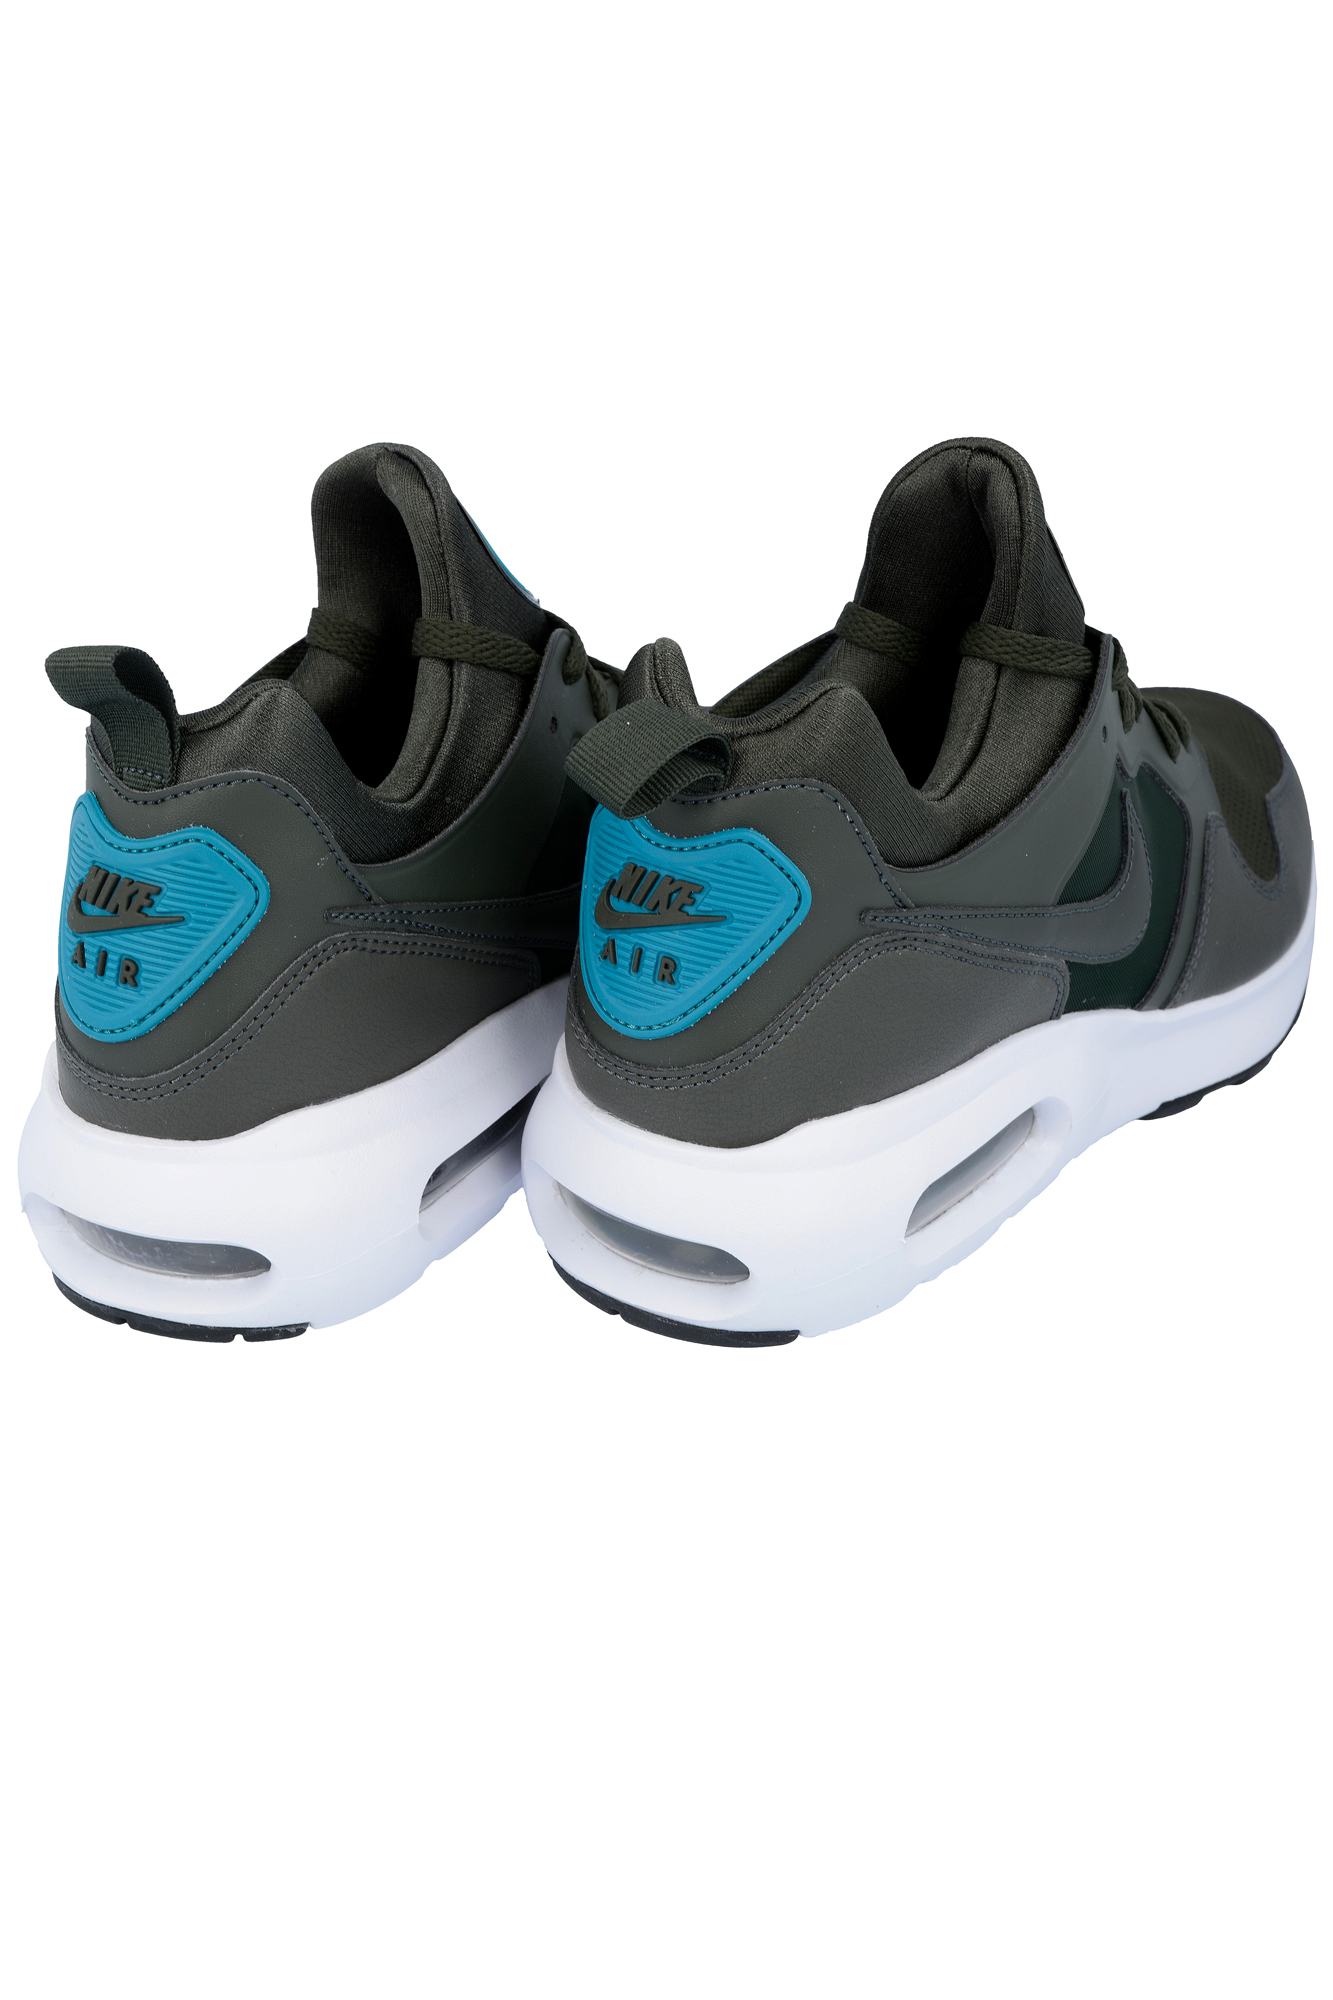 separation shoes 4796c 3dc82 ... Buty Nike Air Max Prime SL - 876069-300 ...